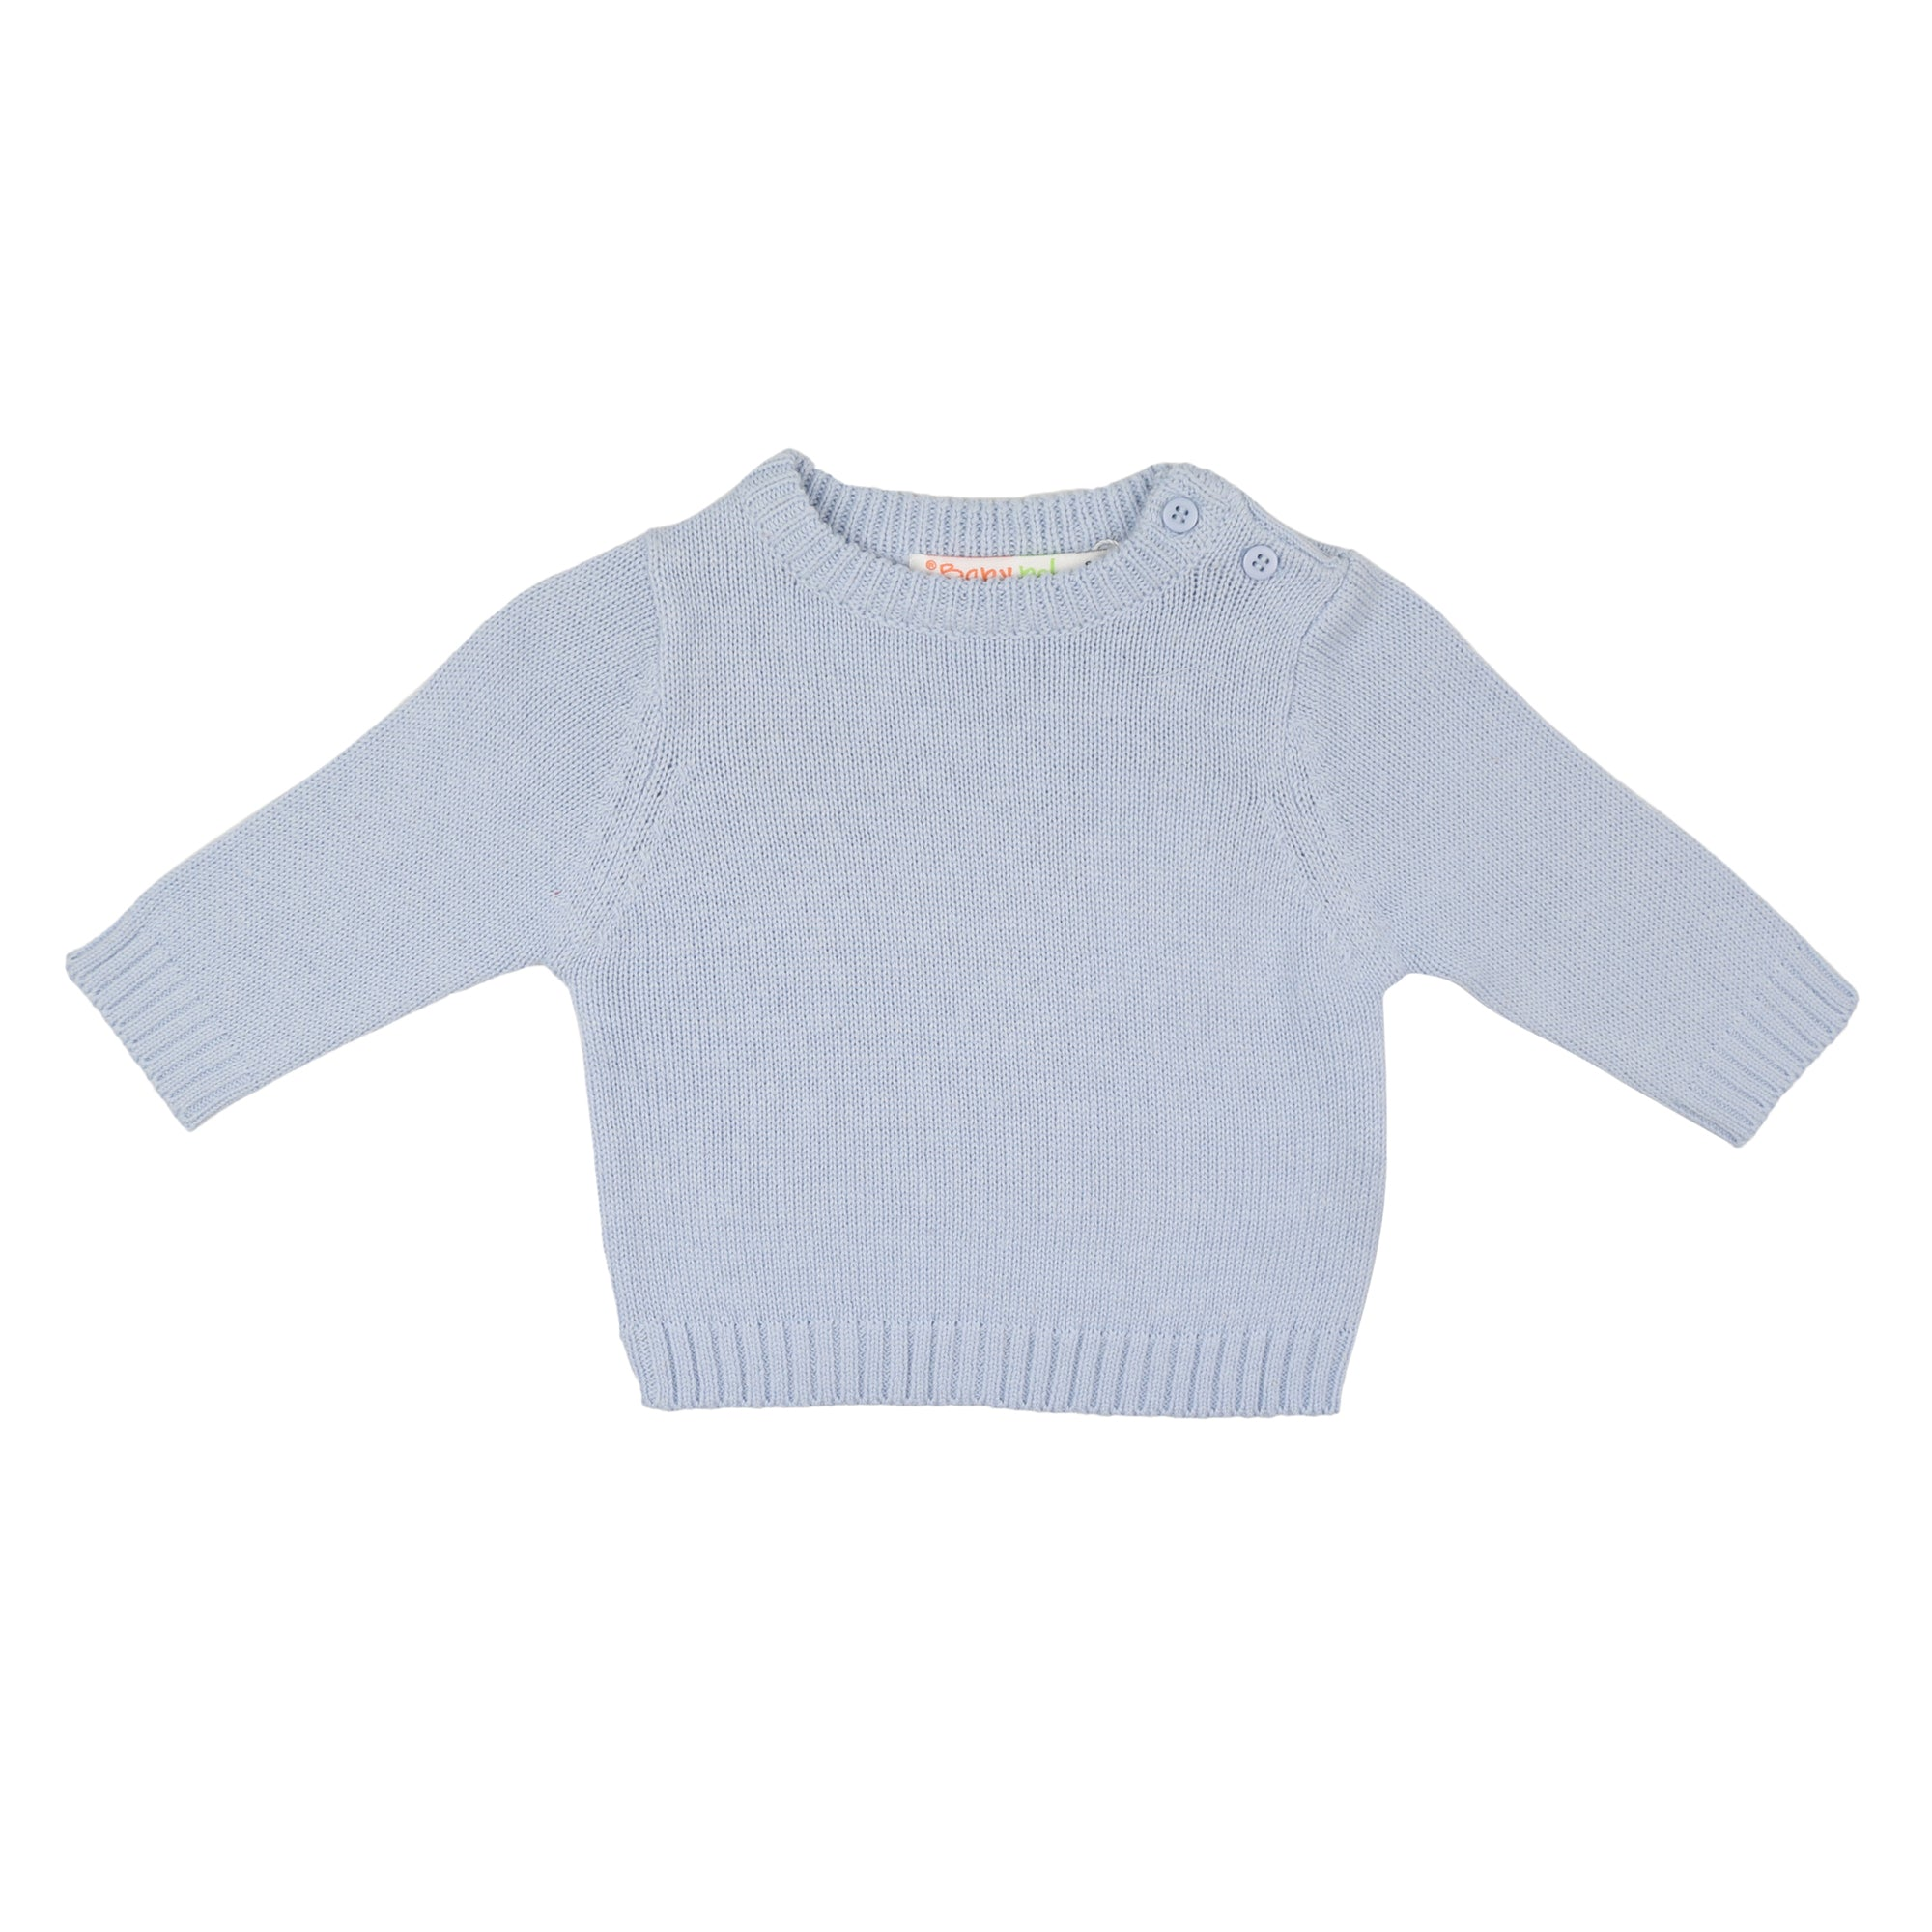 Babybol Blue Knitted Jumper